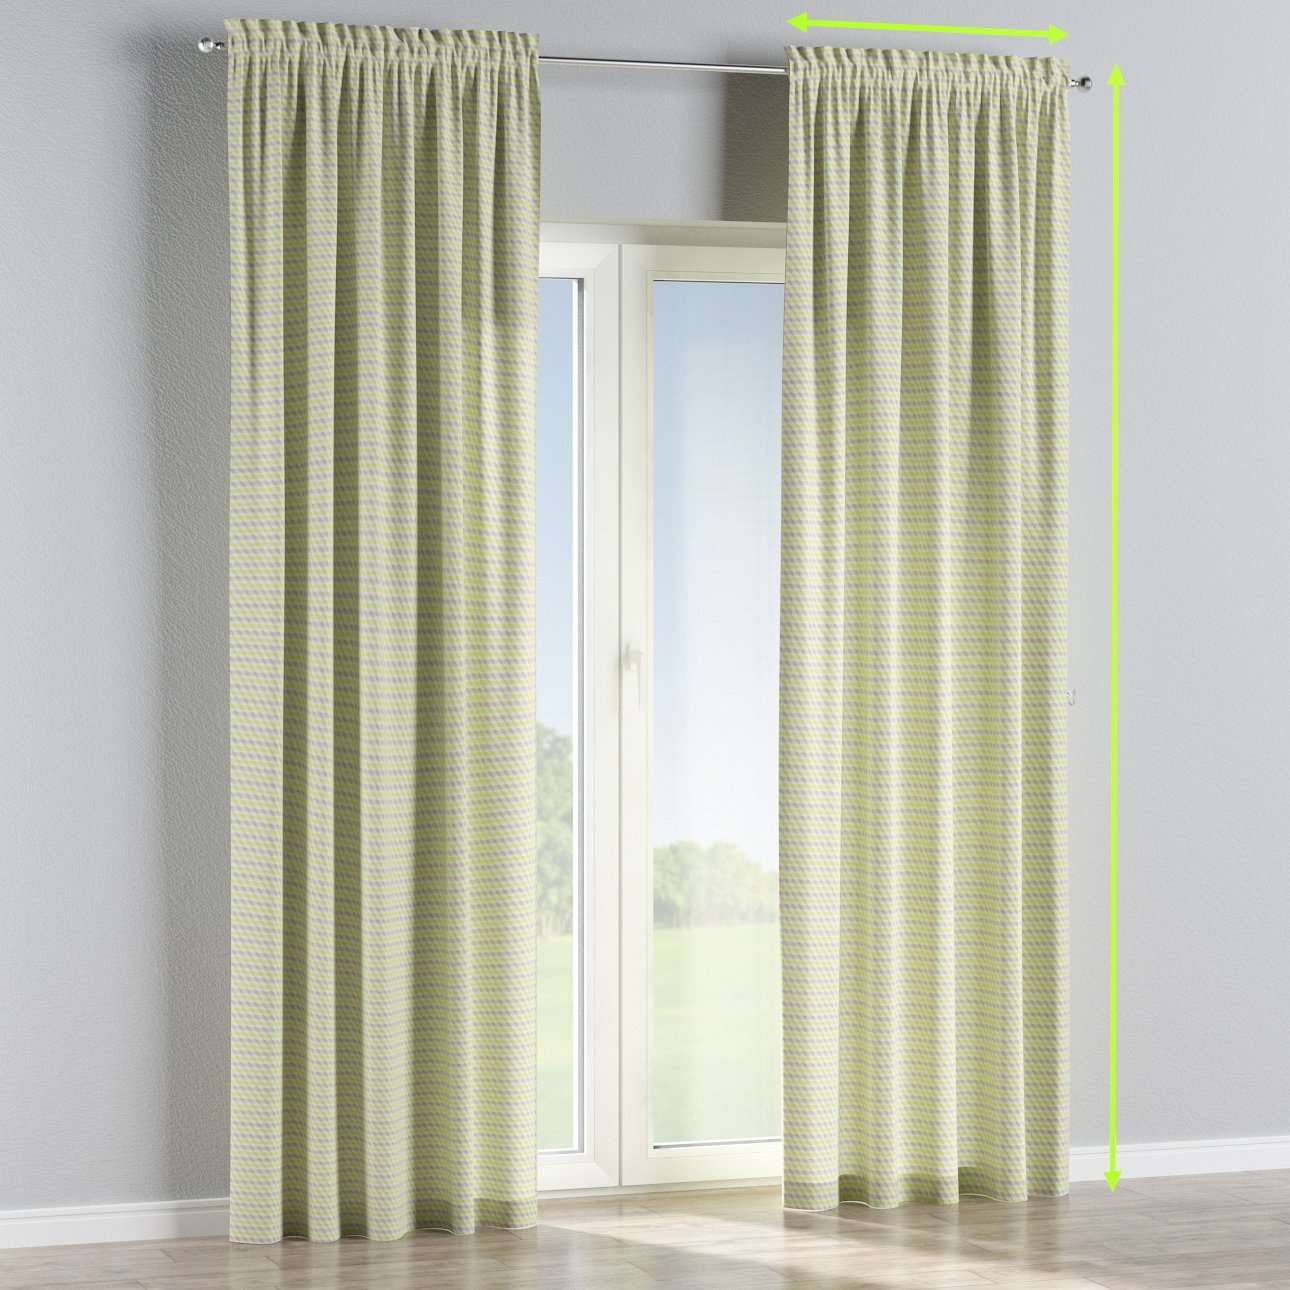 Slot and frill curtains in collection Rustica, fabric: 140-36